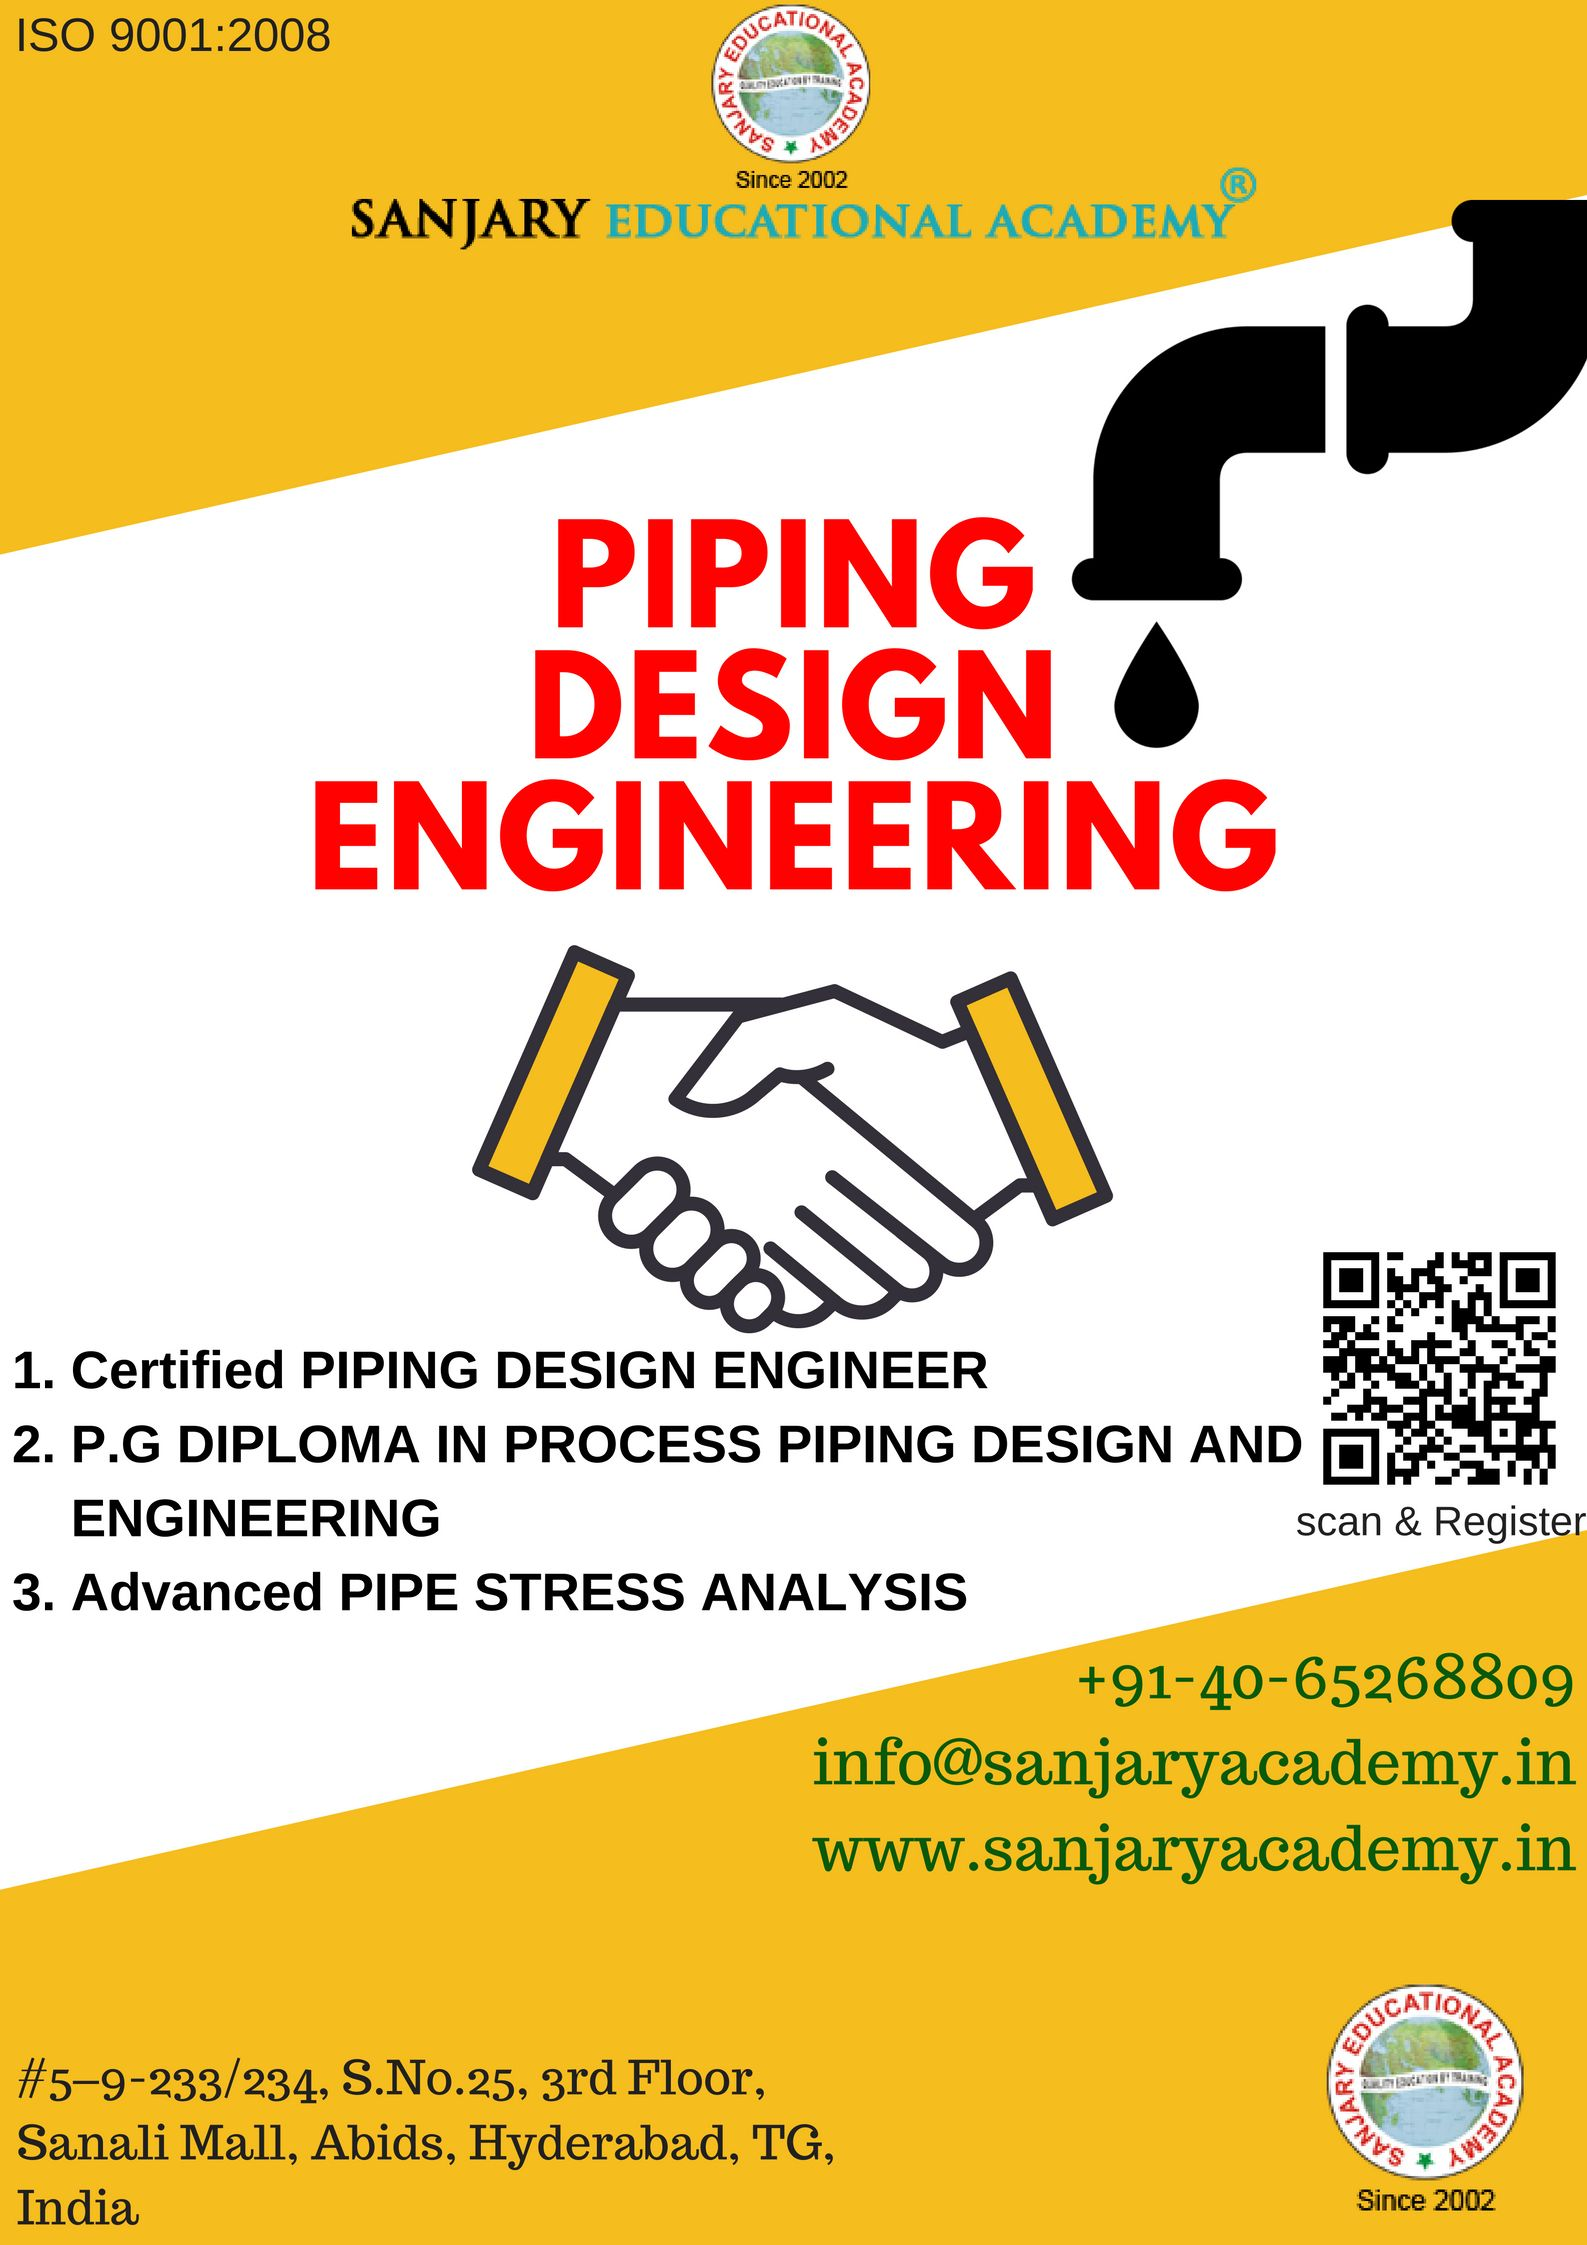 Piping design course is one of the best course for